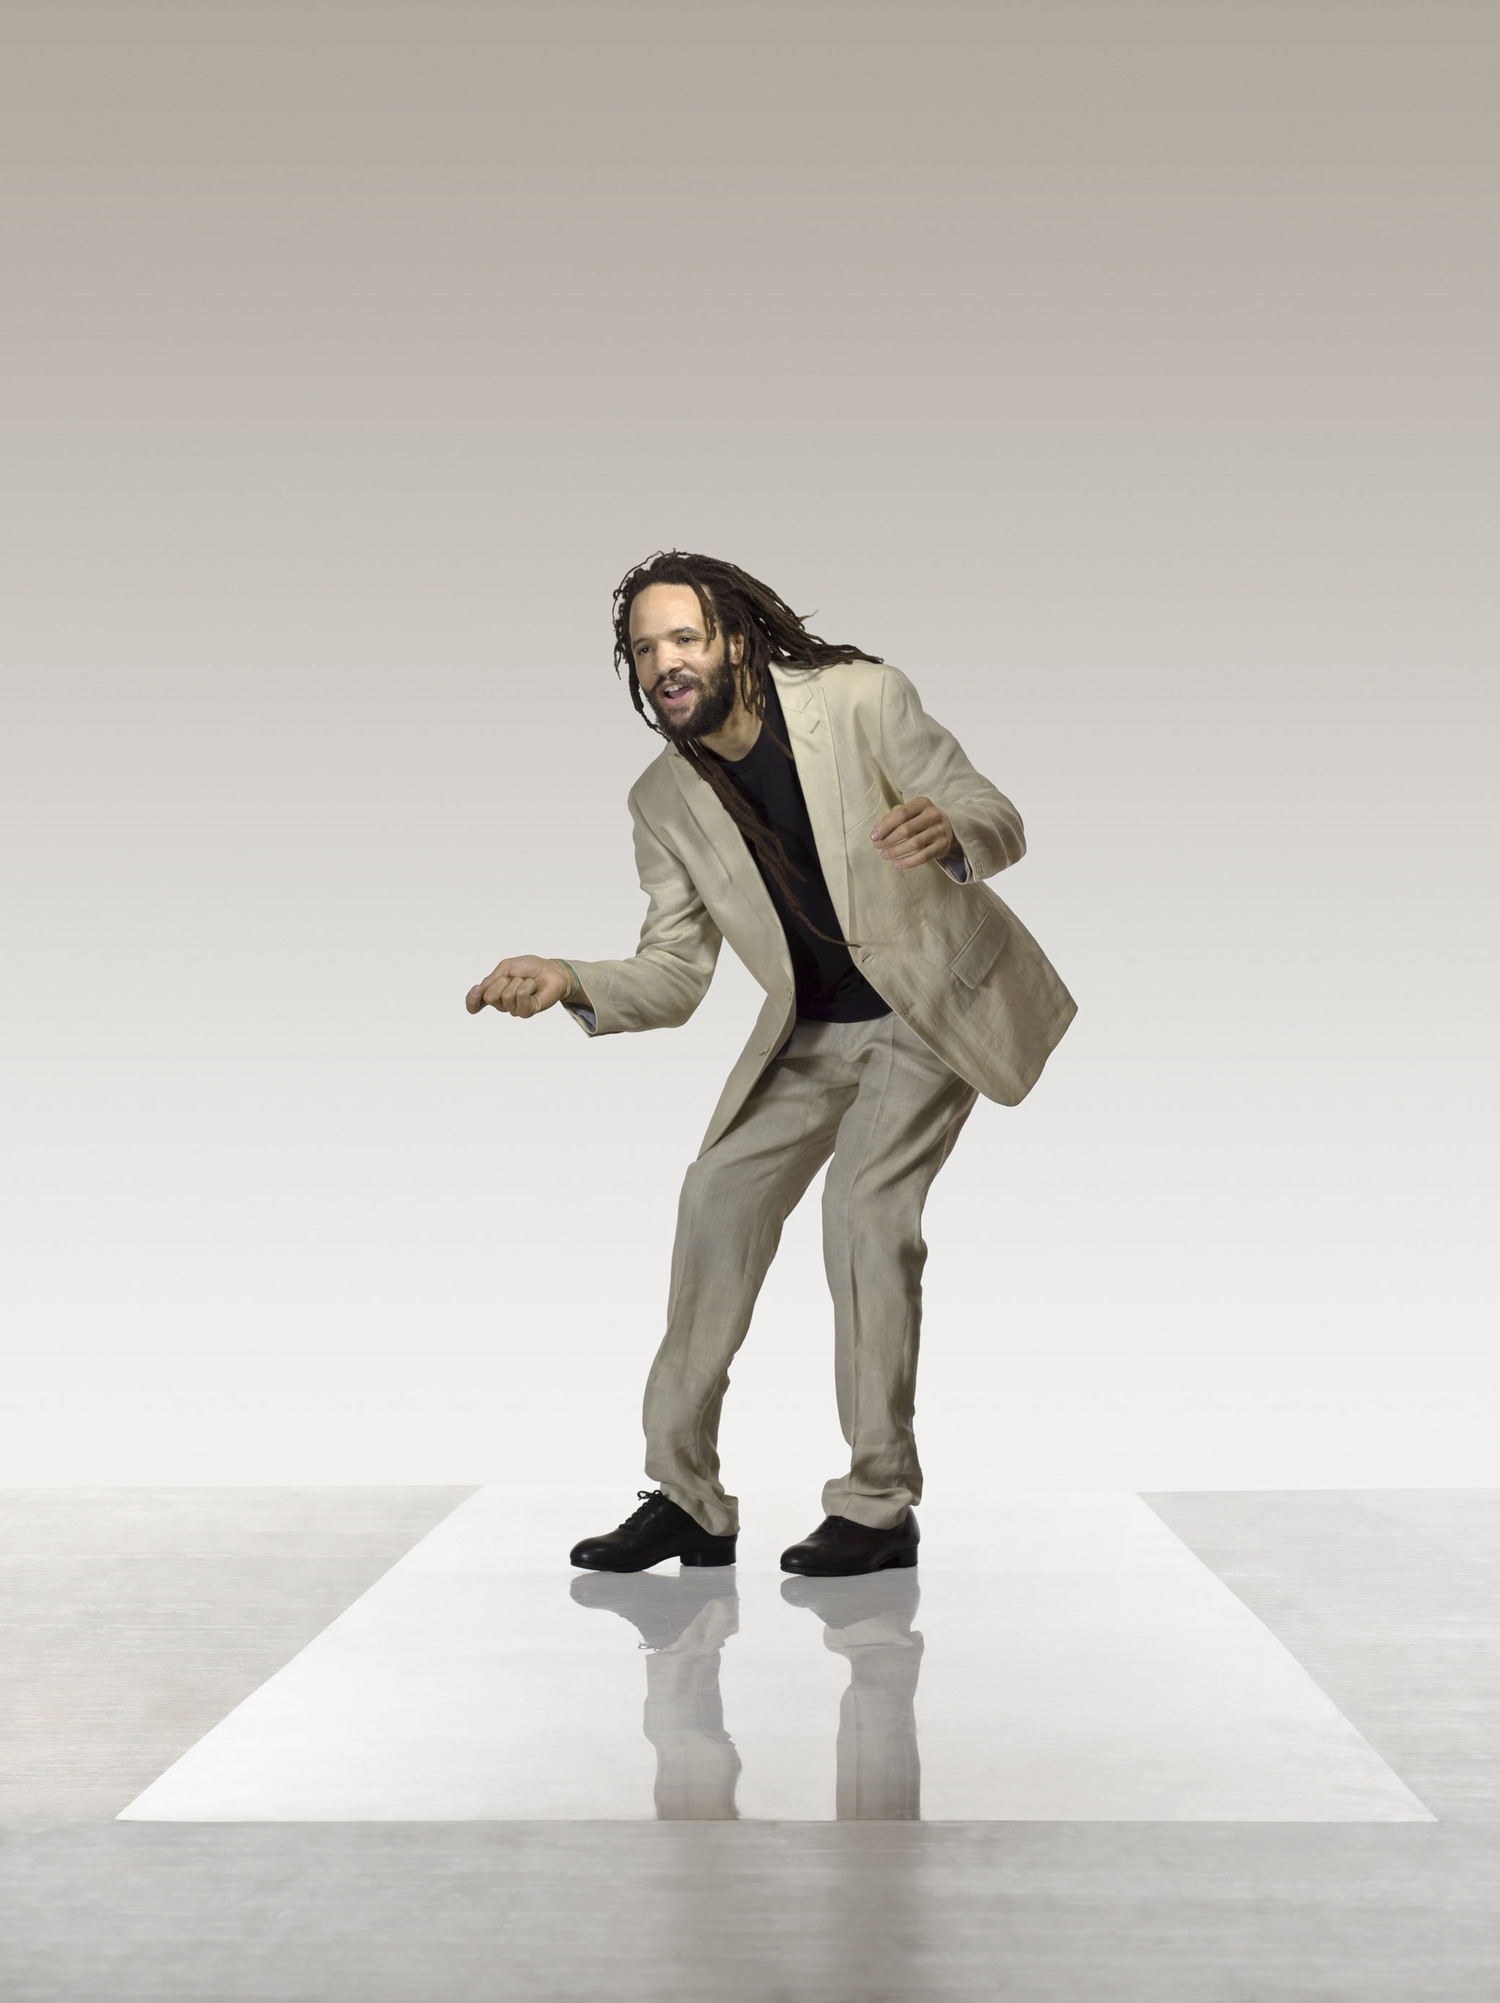 BWW Review: SAVION GLOVER & GREGORY PORTER  - SOPHISTICATED RHYTHMS N' JAZZY BLUES NAT KING COLE STYLE at The Hollywood Bowl